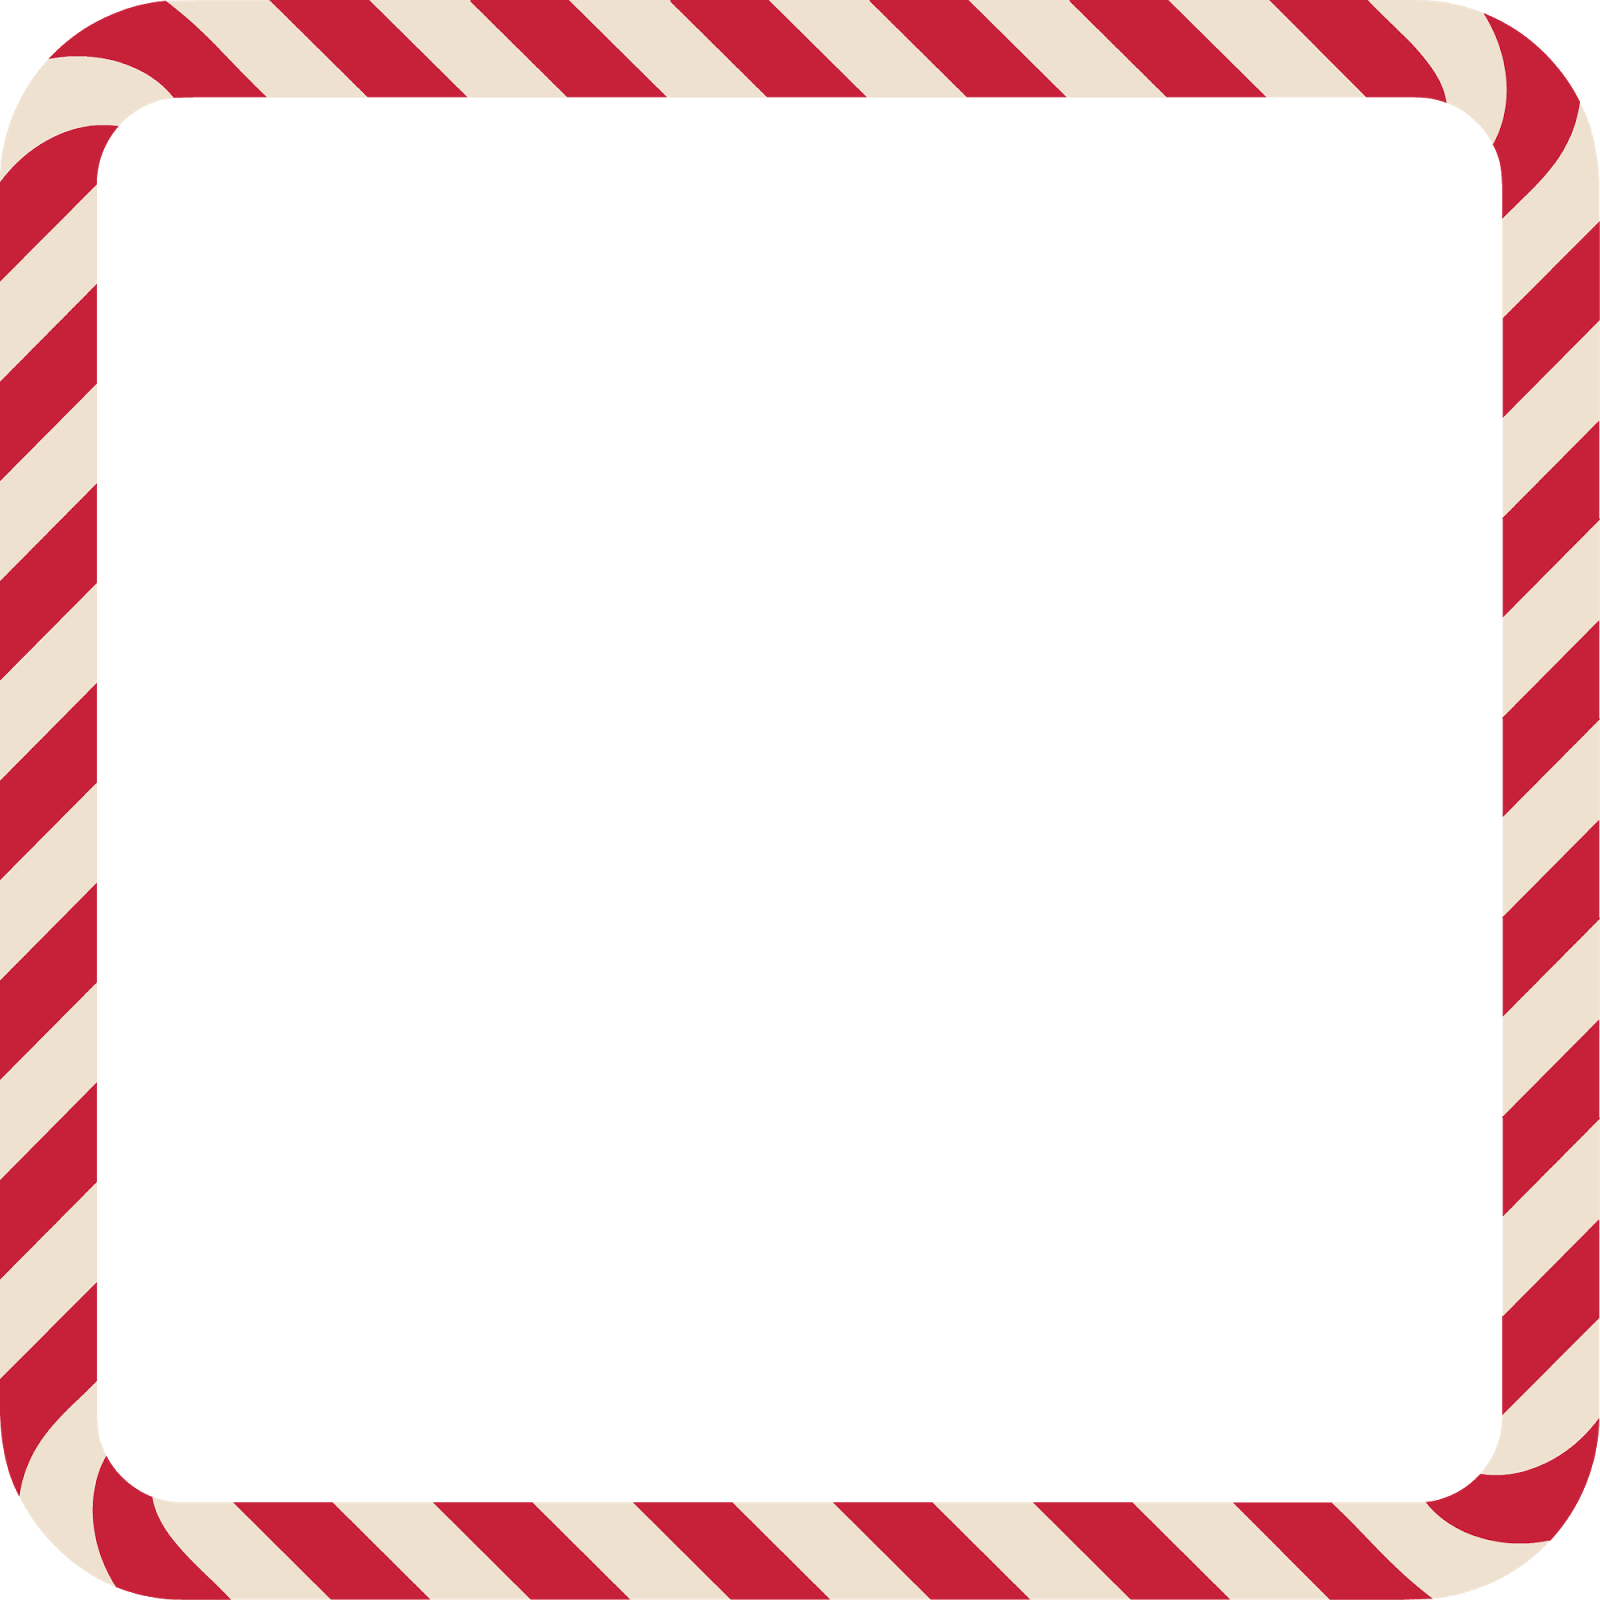 Candy cane clipart vector vector free Wonderland In A Wardrobe: Candy Cane Frames Freebies! | Vector ... vector free